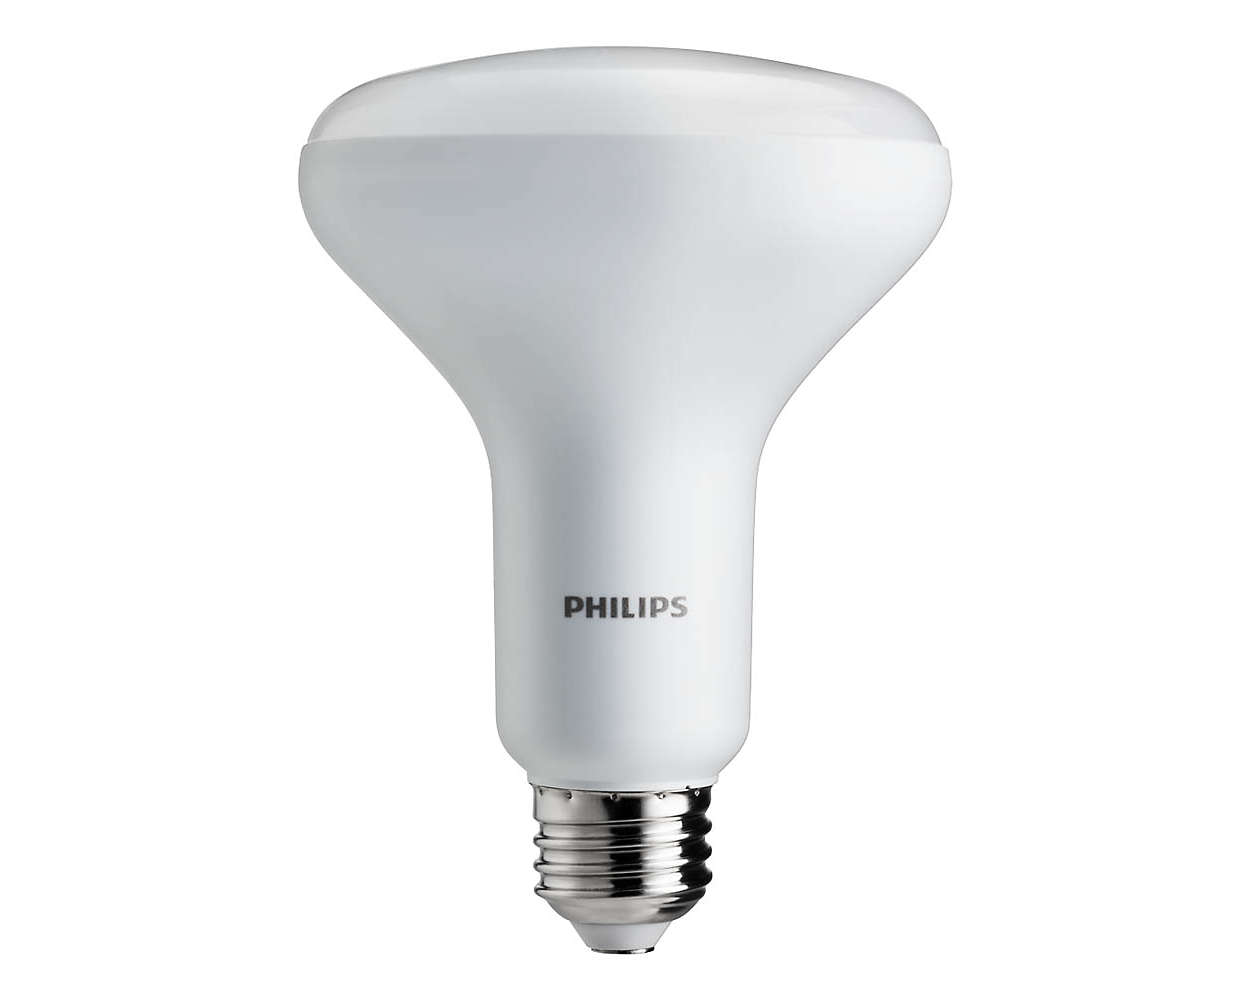 The everyday LED bulb, for everywhere in your home